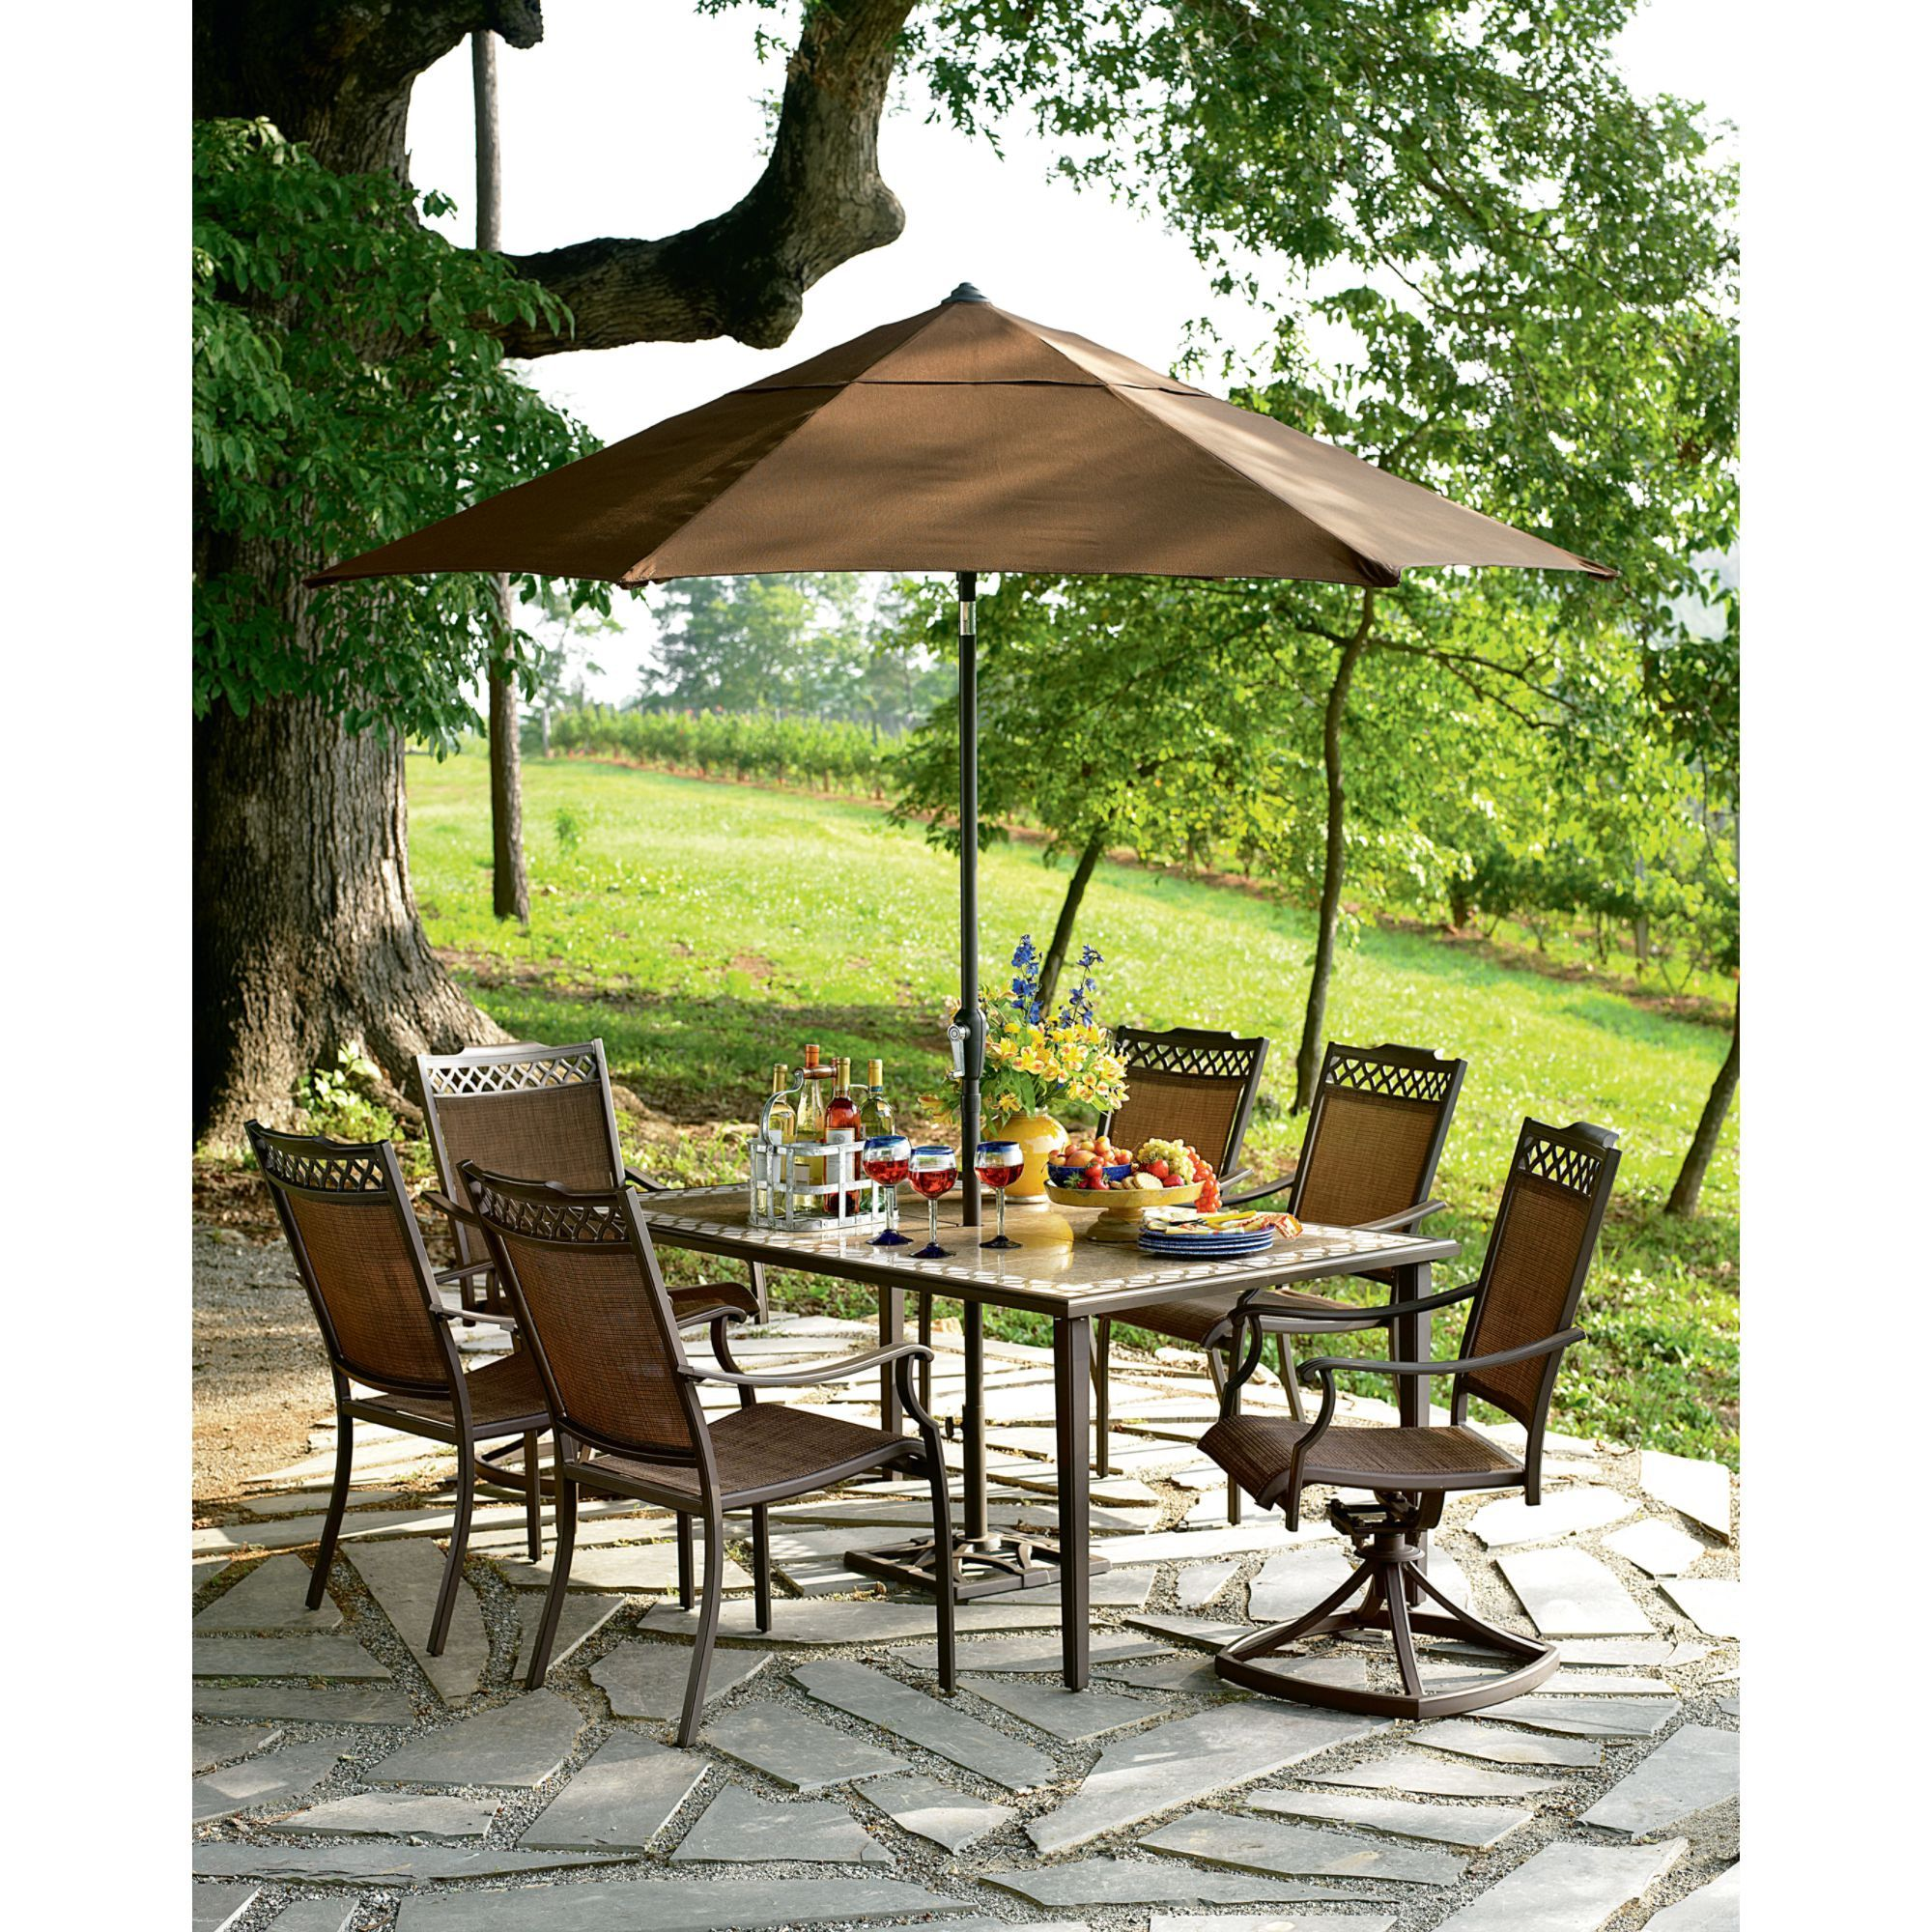 Country Living Outdoor Furniture Cool Storage Check More At Http Cacophonouscreations